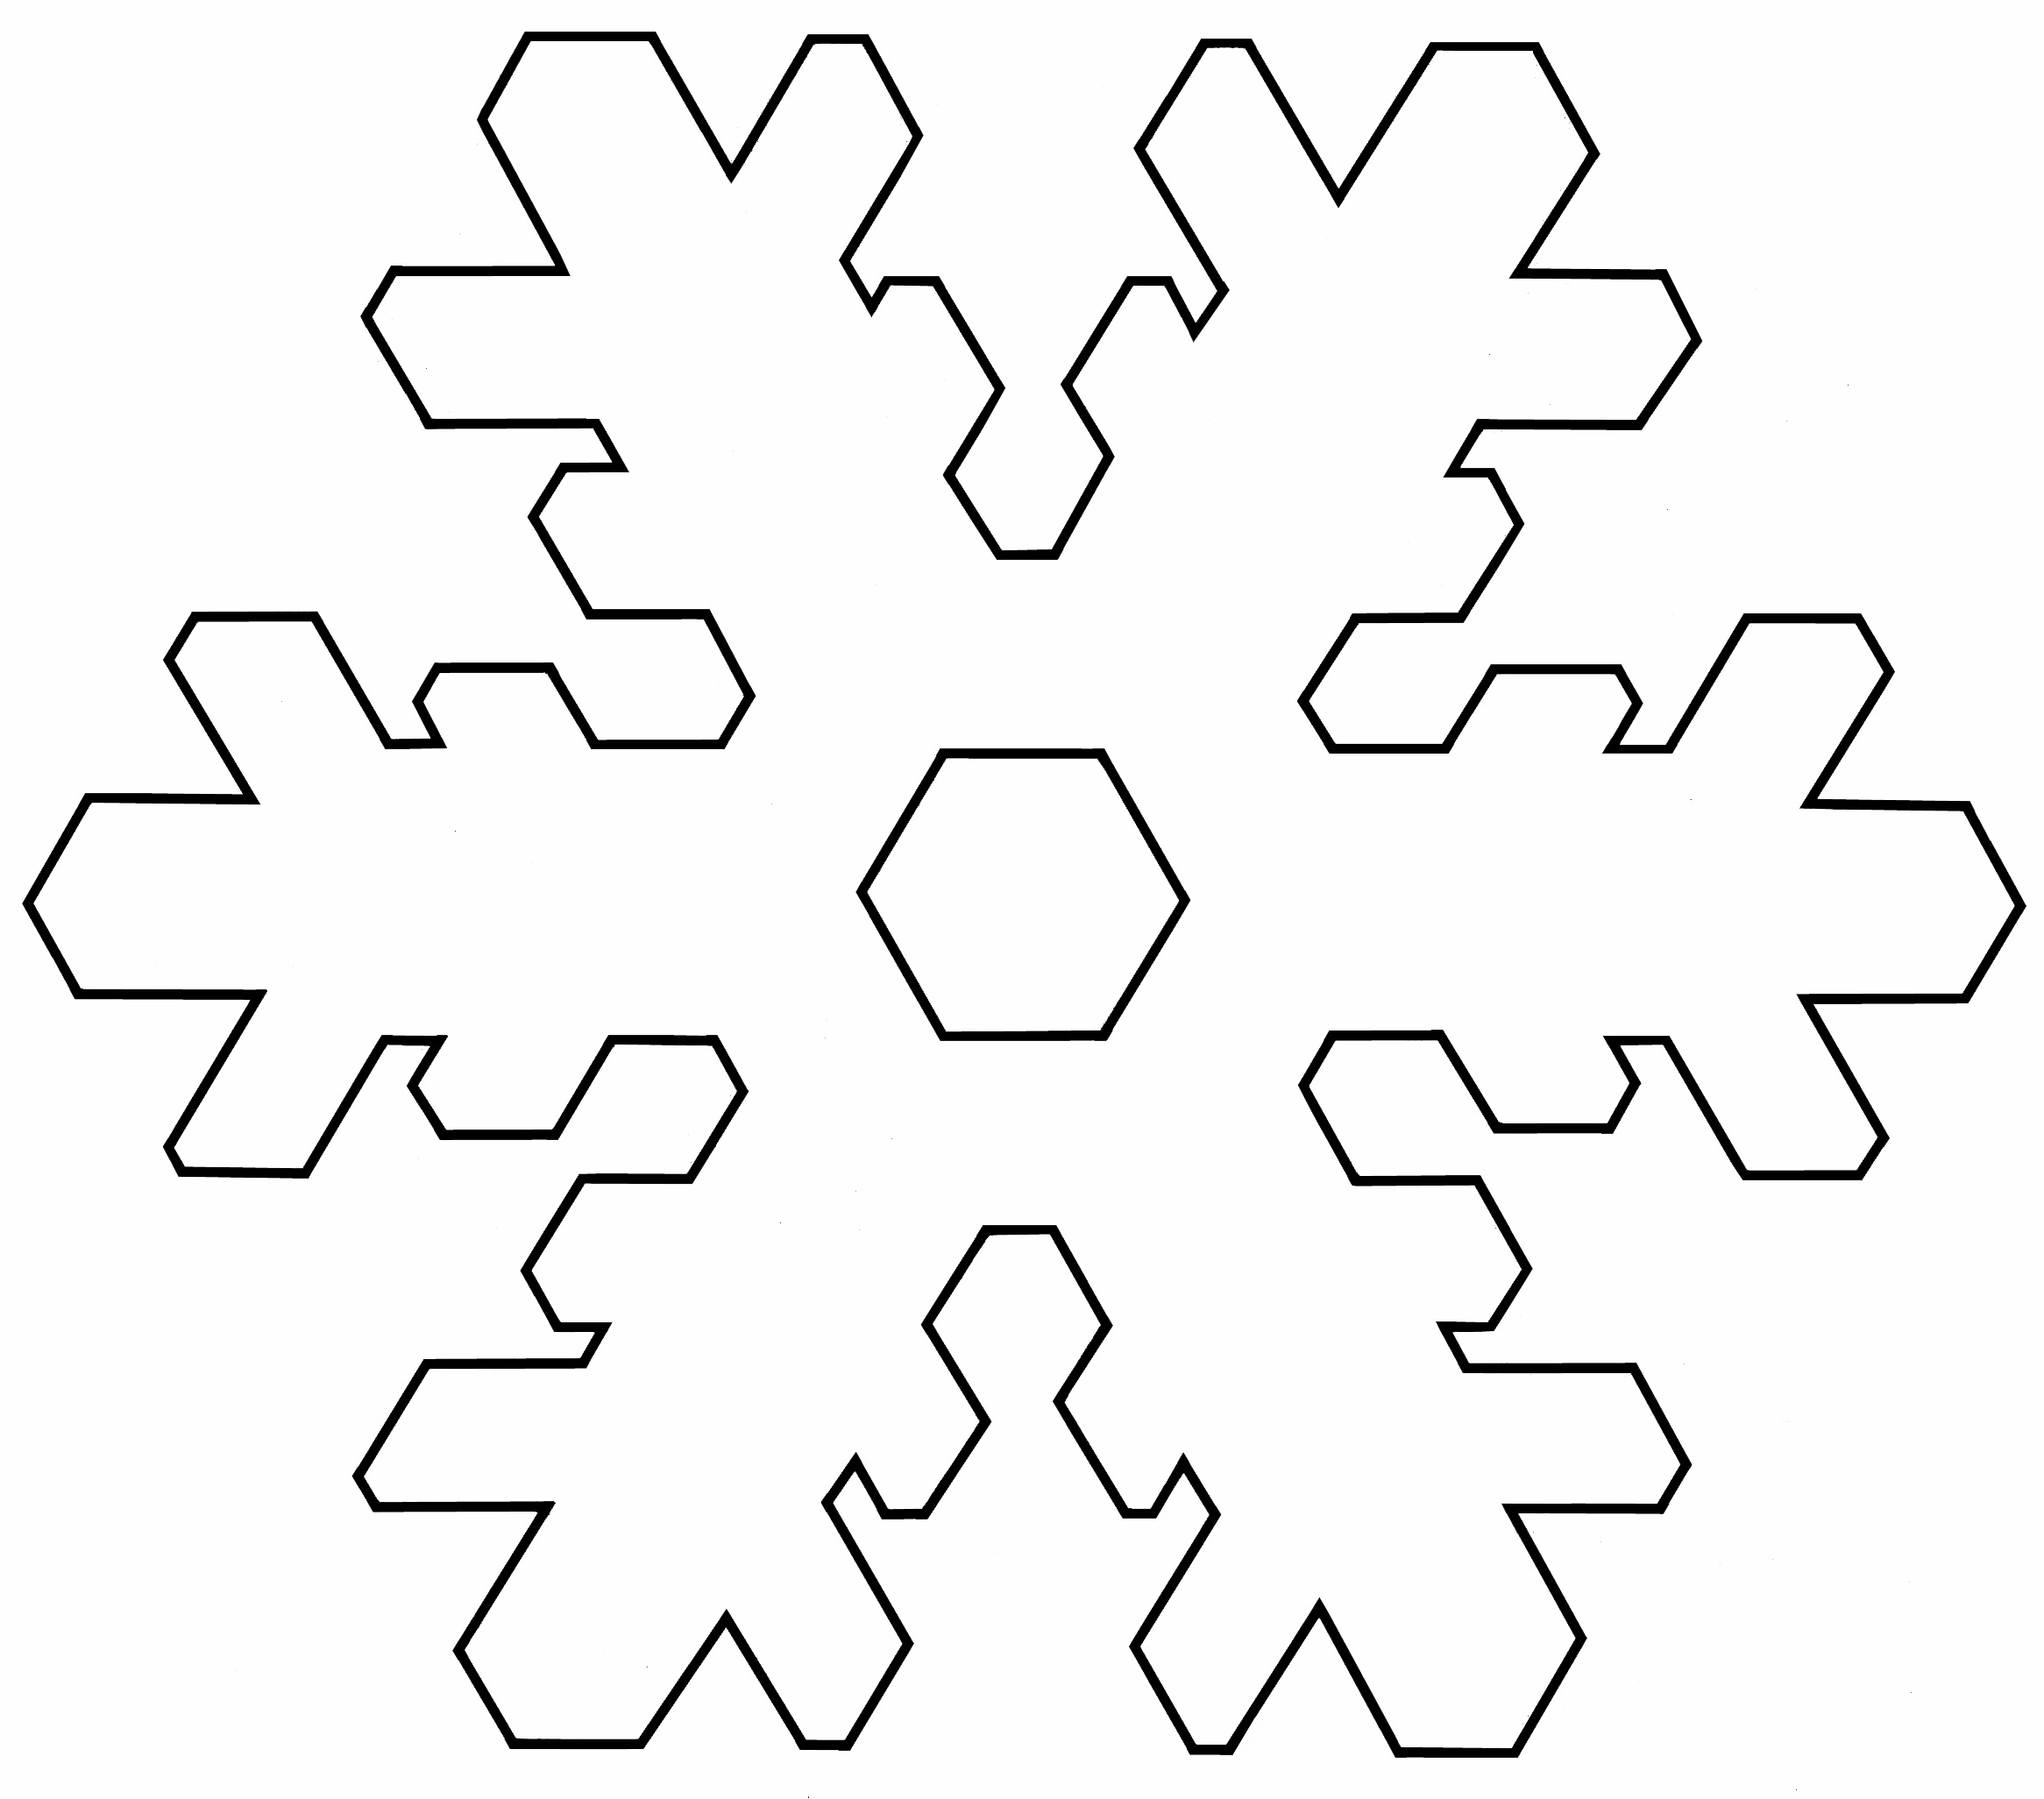 Small snowflake template selol ink small snowflake template maxwellsz